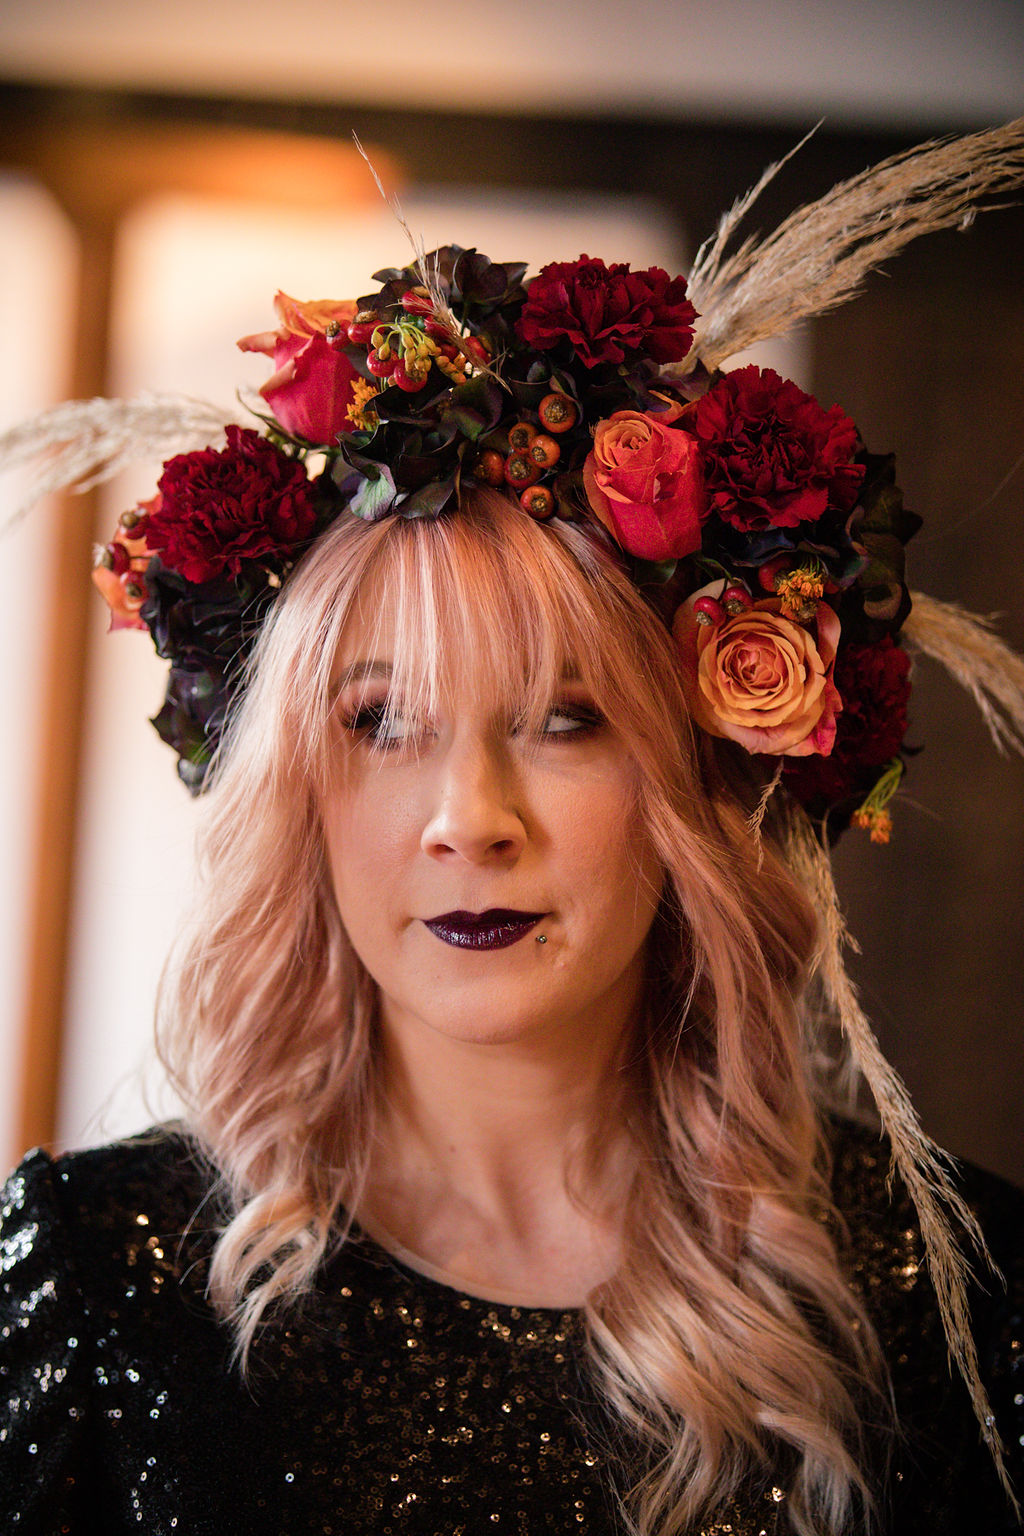 dark autumn wedding - autumn flower crown - bridal flower crown - black wedding dress - autumn bridal wear